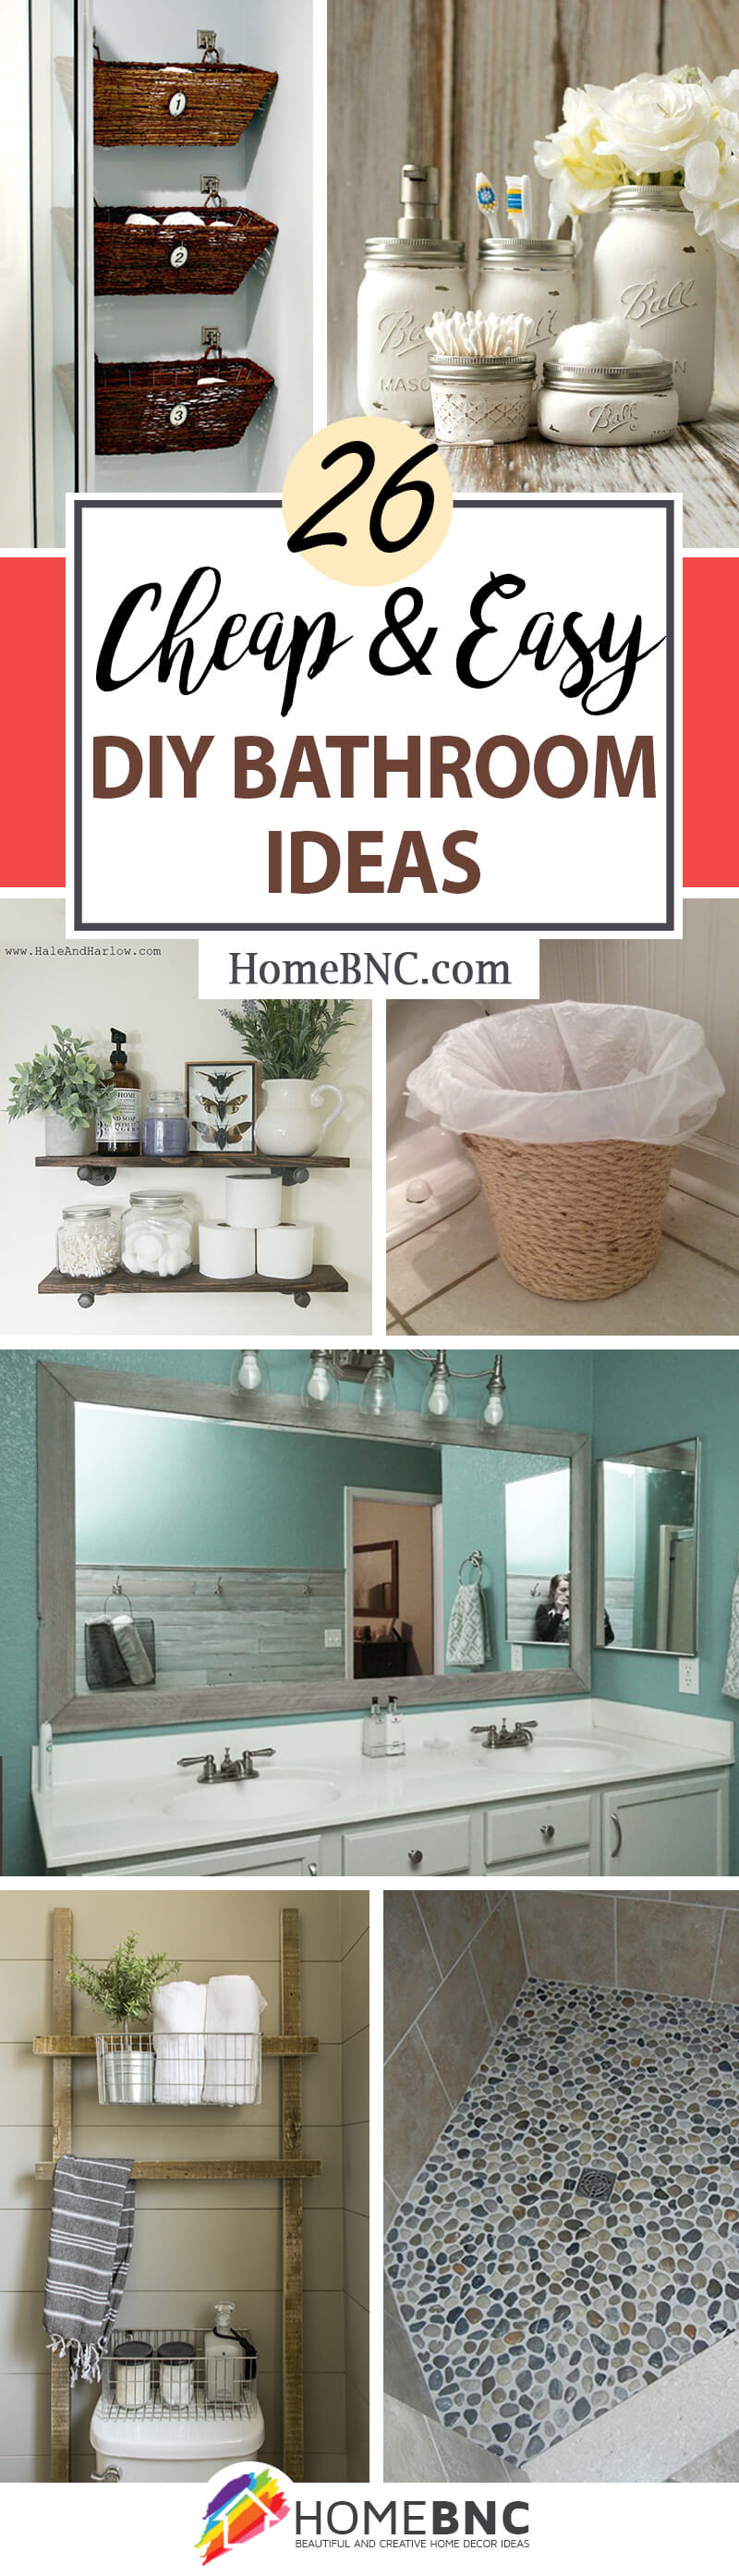 6 Best DIY Bathroom Ideas and Designs for 6